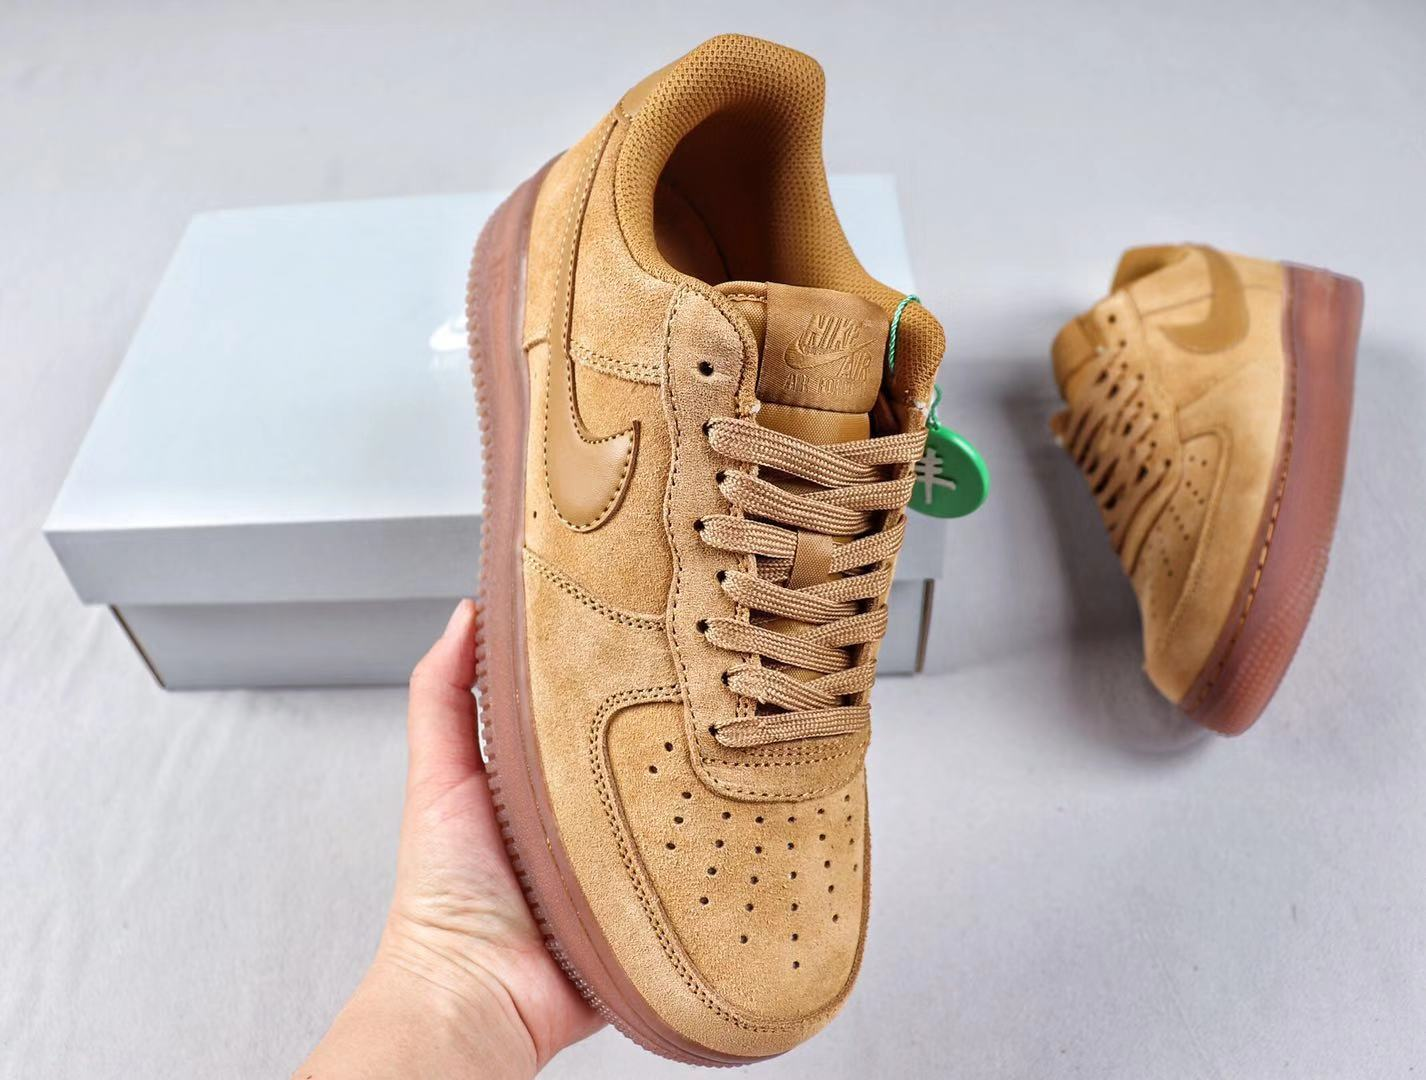 Nike Air Force 1 Low Wheat/Gum-Light Brown Casual Shoes In Stock BQ5485-700